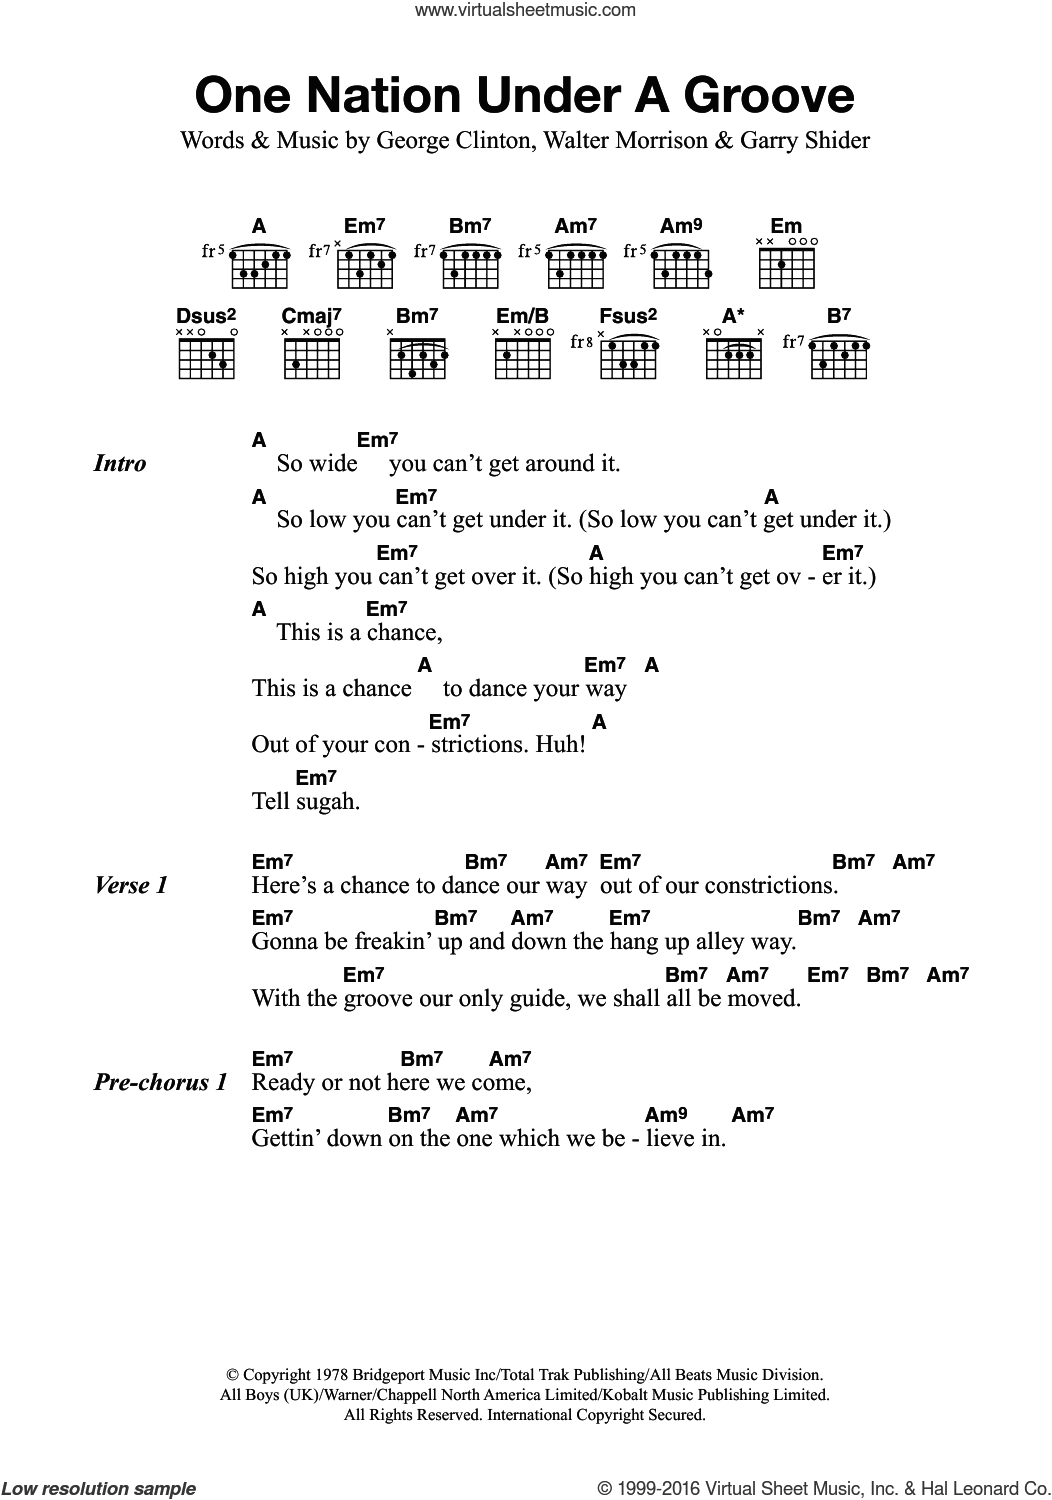 Funkadelic One Nation Under A Groove Sheet Music For Guitar Chords